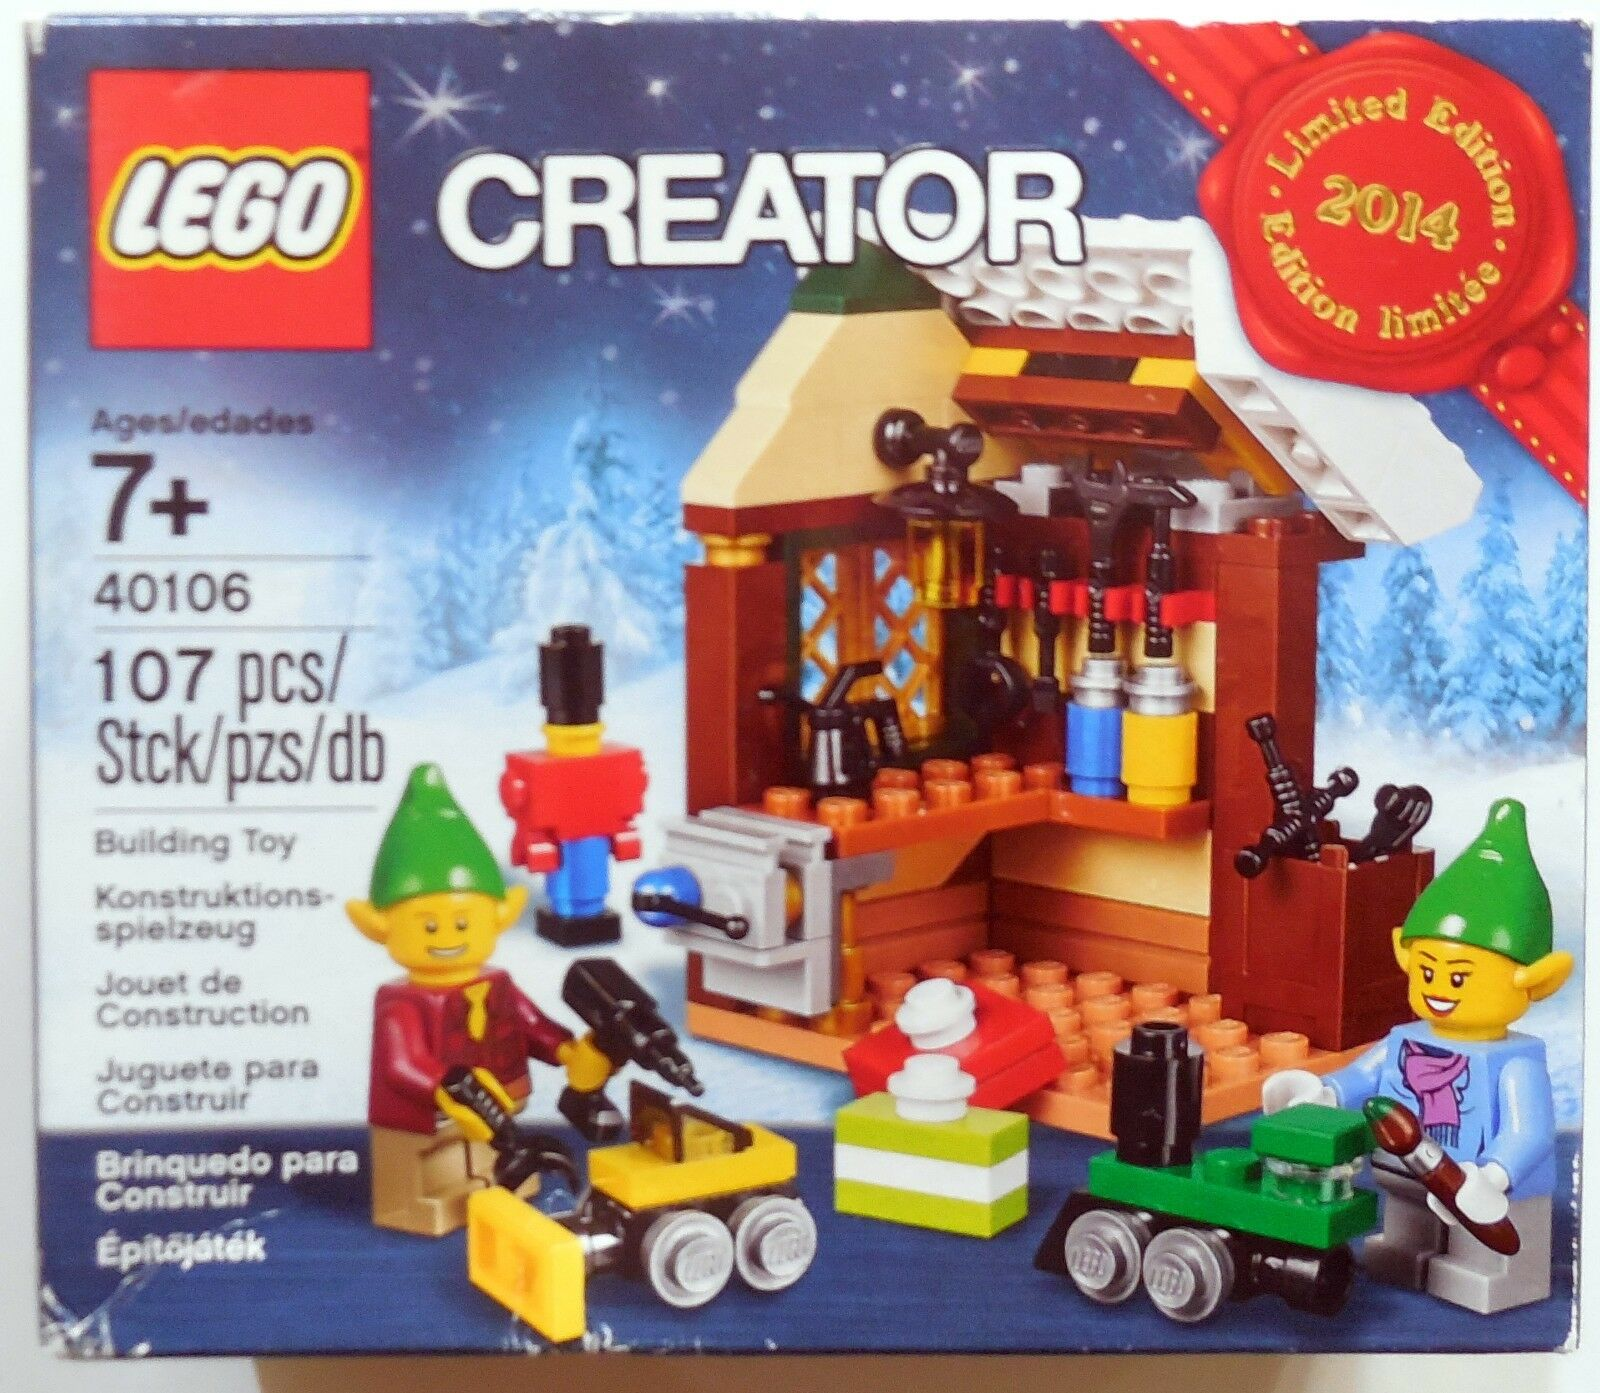 LEGO CREATOR ELFI BUILDING TOY LIMITED EDITION 2014 SIGILLATO